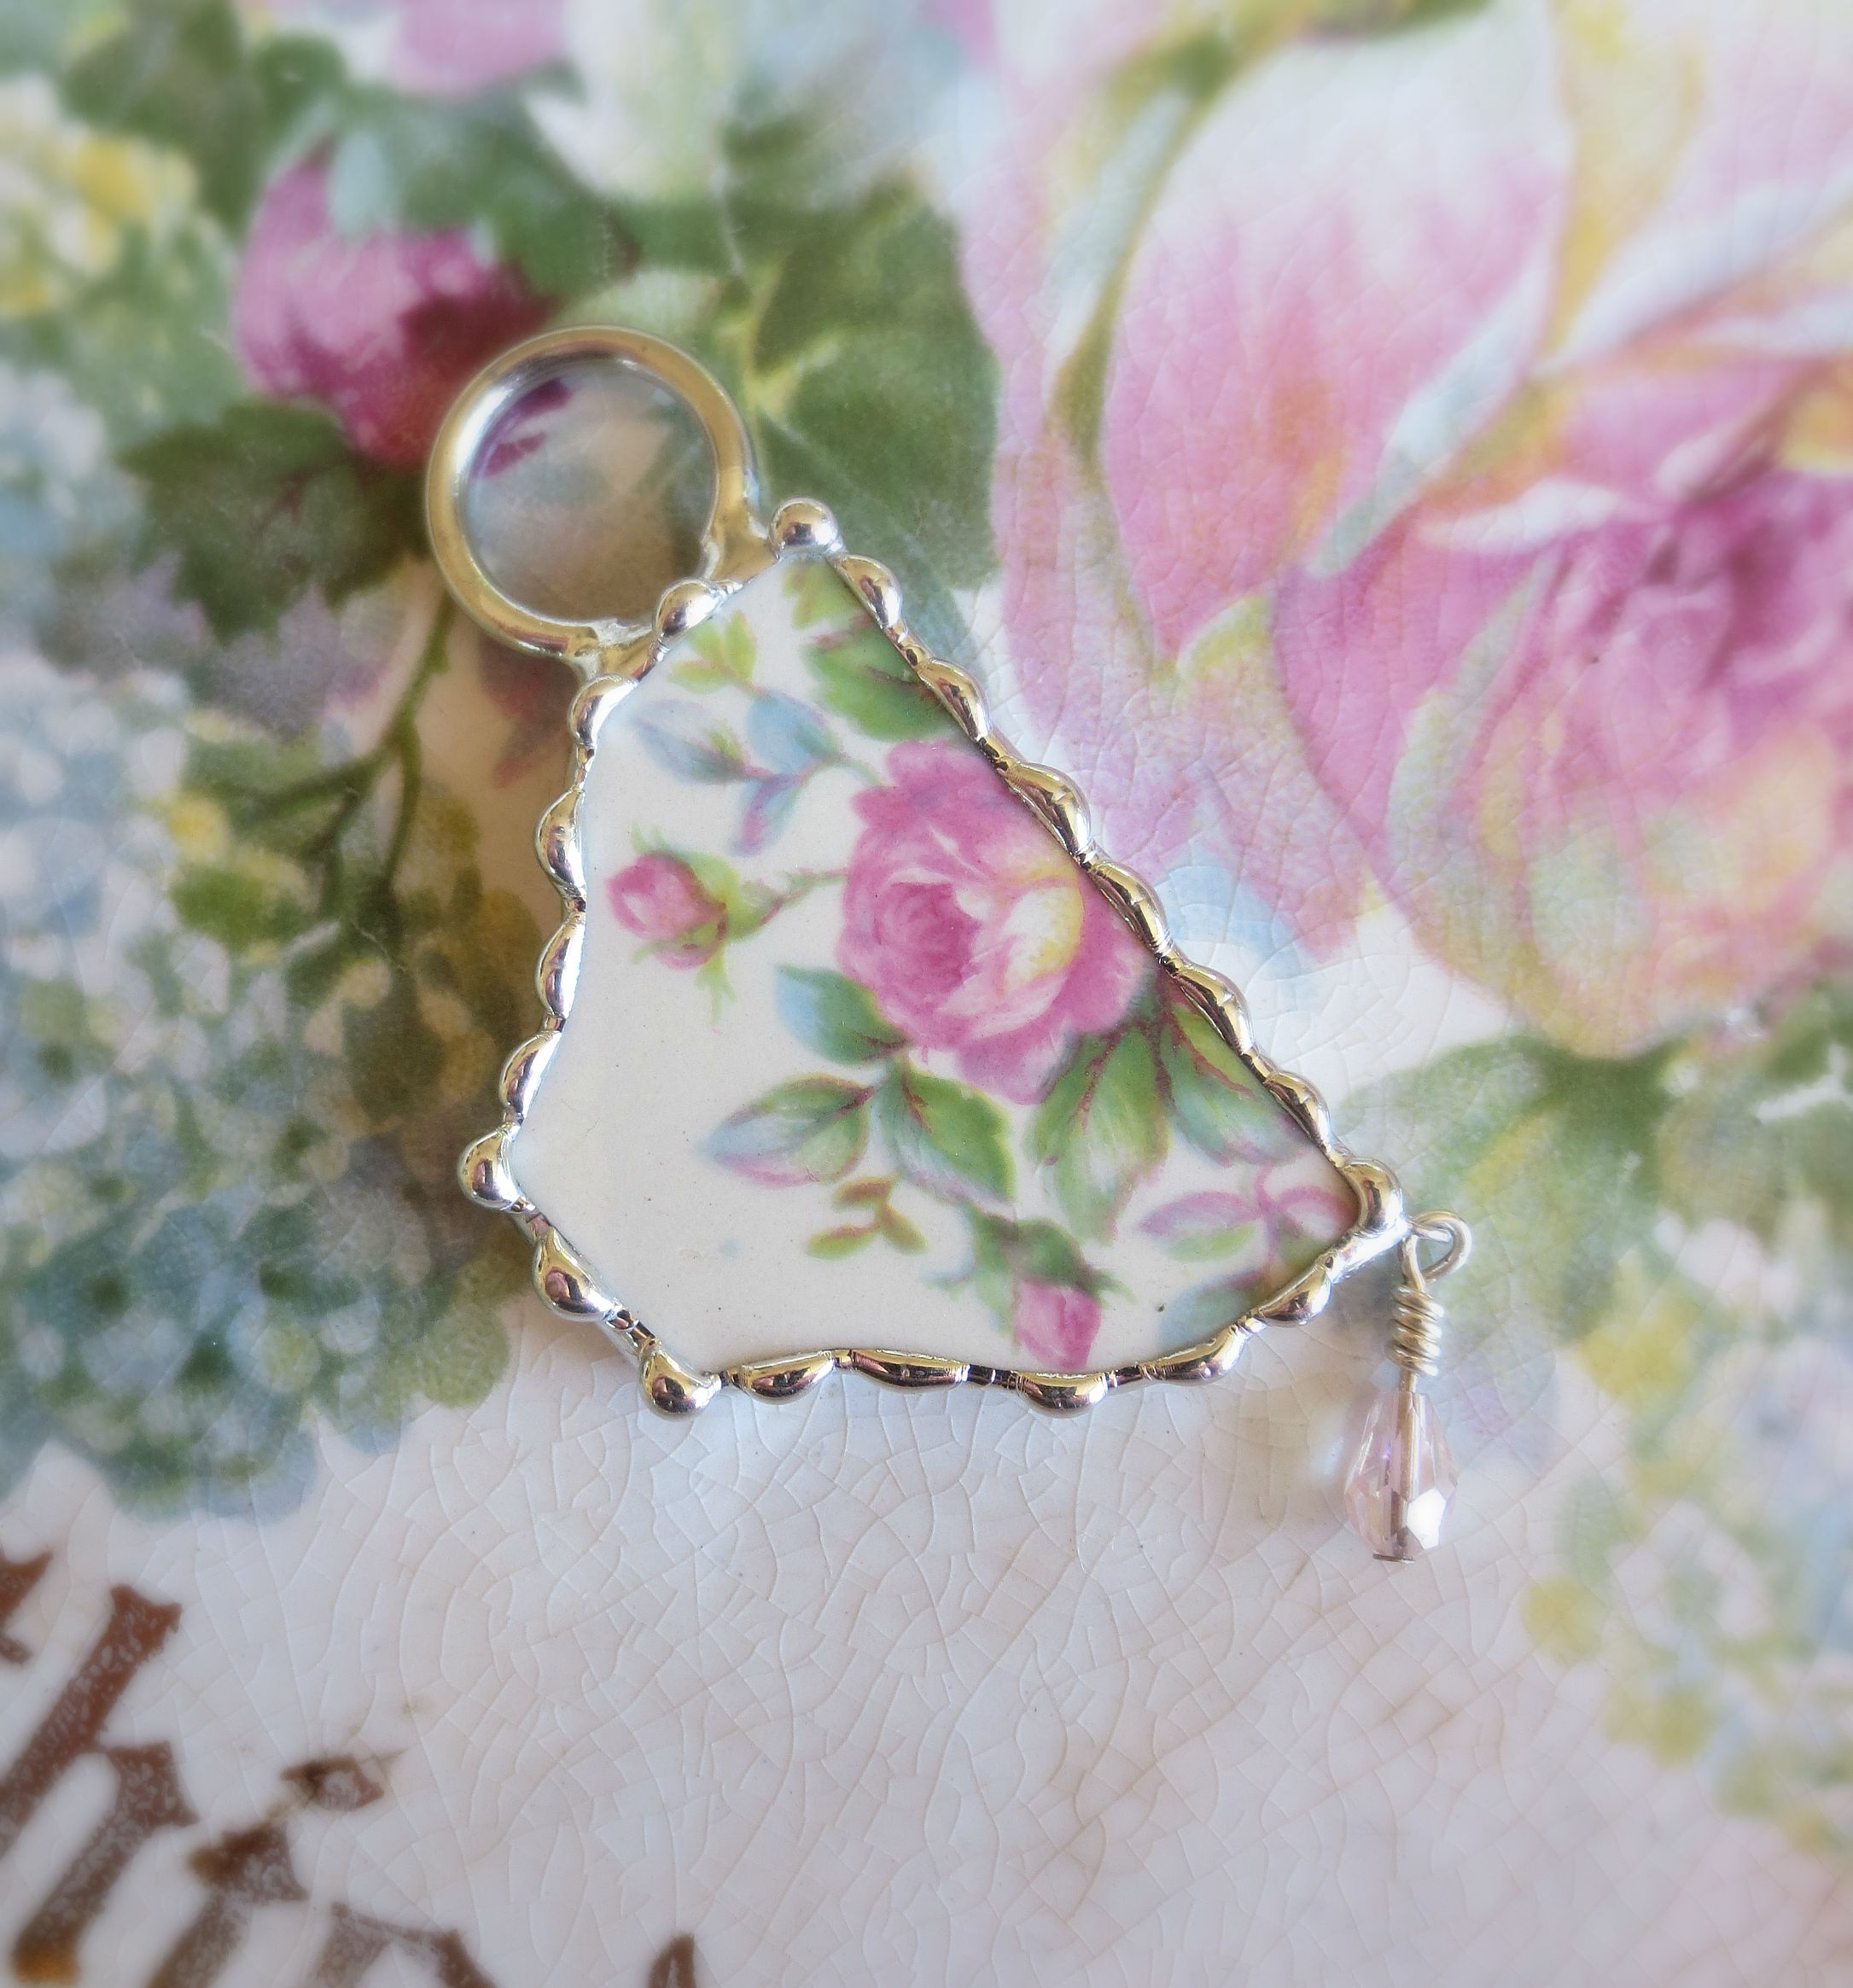 Vintage Roses China Tea Cup Pendant